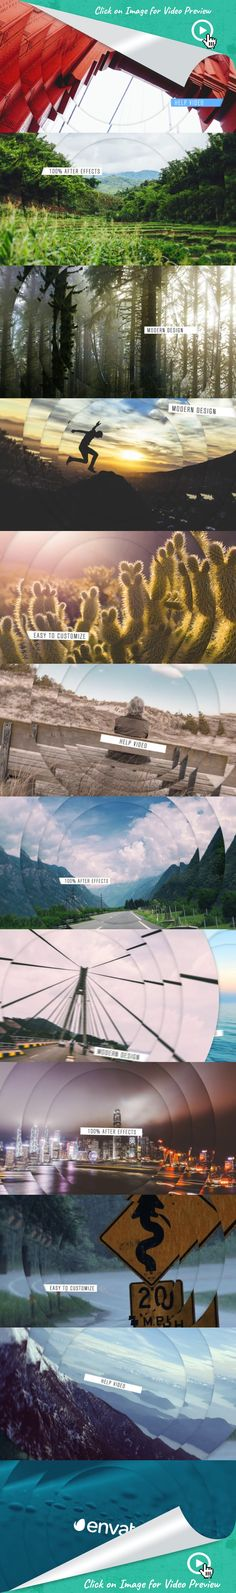 """cinematic, circles, clean, corporate, dynamic, elegant, fashion, intro, new, opener, photo, show, stylish, titles, travel, after effects templates, after effects ideas, after effects motion graphics, after effects projects, videohive projects    Resolutions: Full HD 1920×1080 No Plugin Required Adobe CS5.5 and Above Video Tutorial Included 34 Photos and 33 Text Blocks Images in Video Preview are not included Music: ALEX_BESSS – Epic Inspired       """"Circles Modern"""" is a cinematic slid..."""